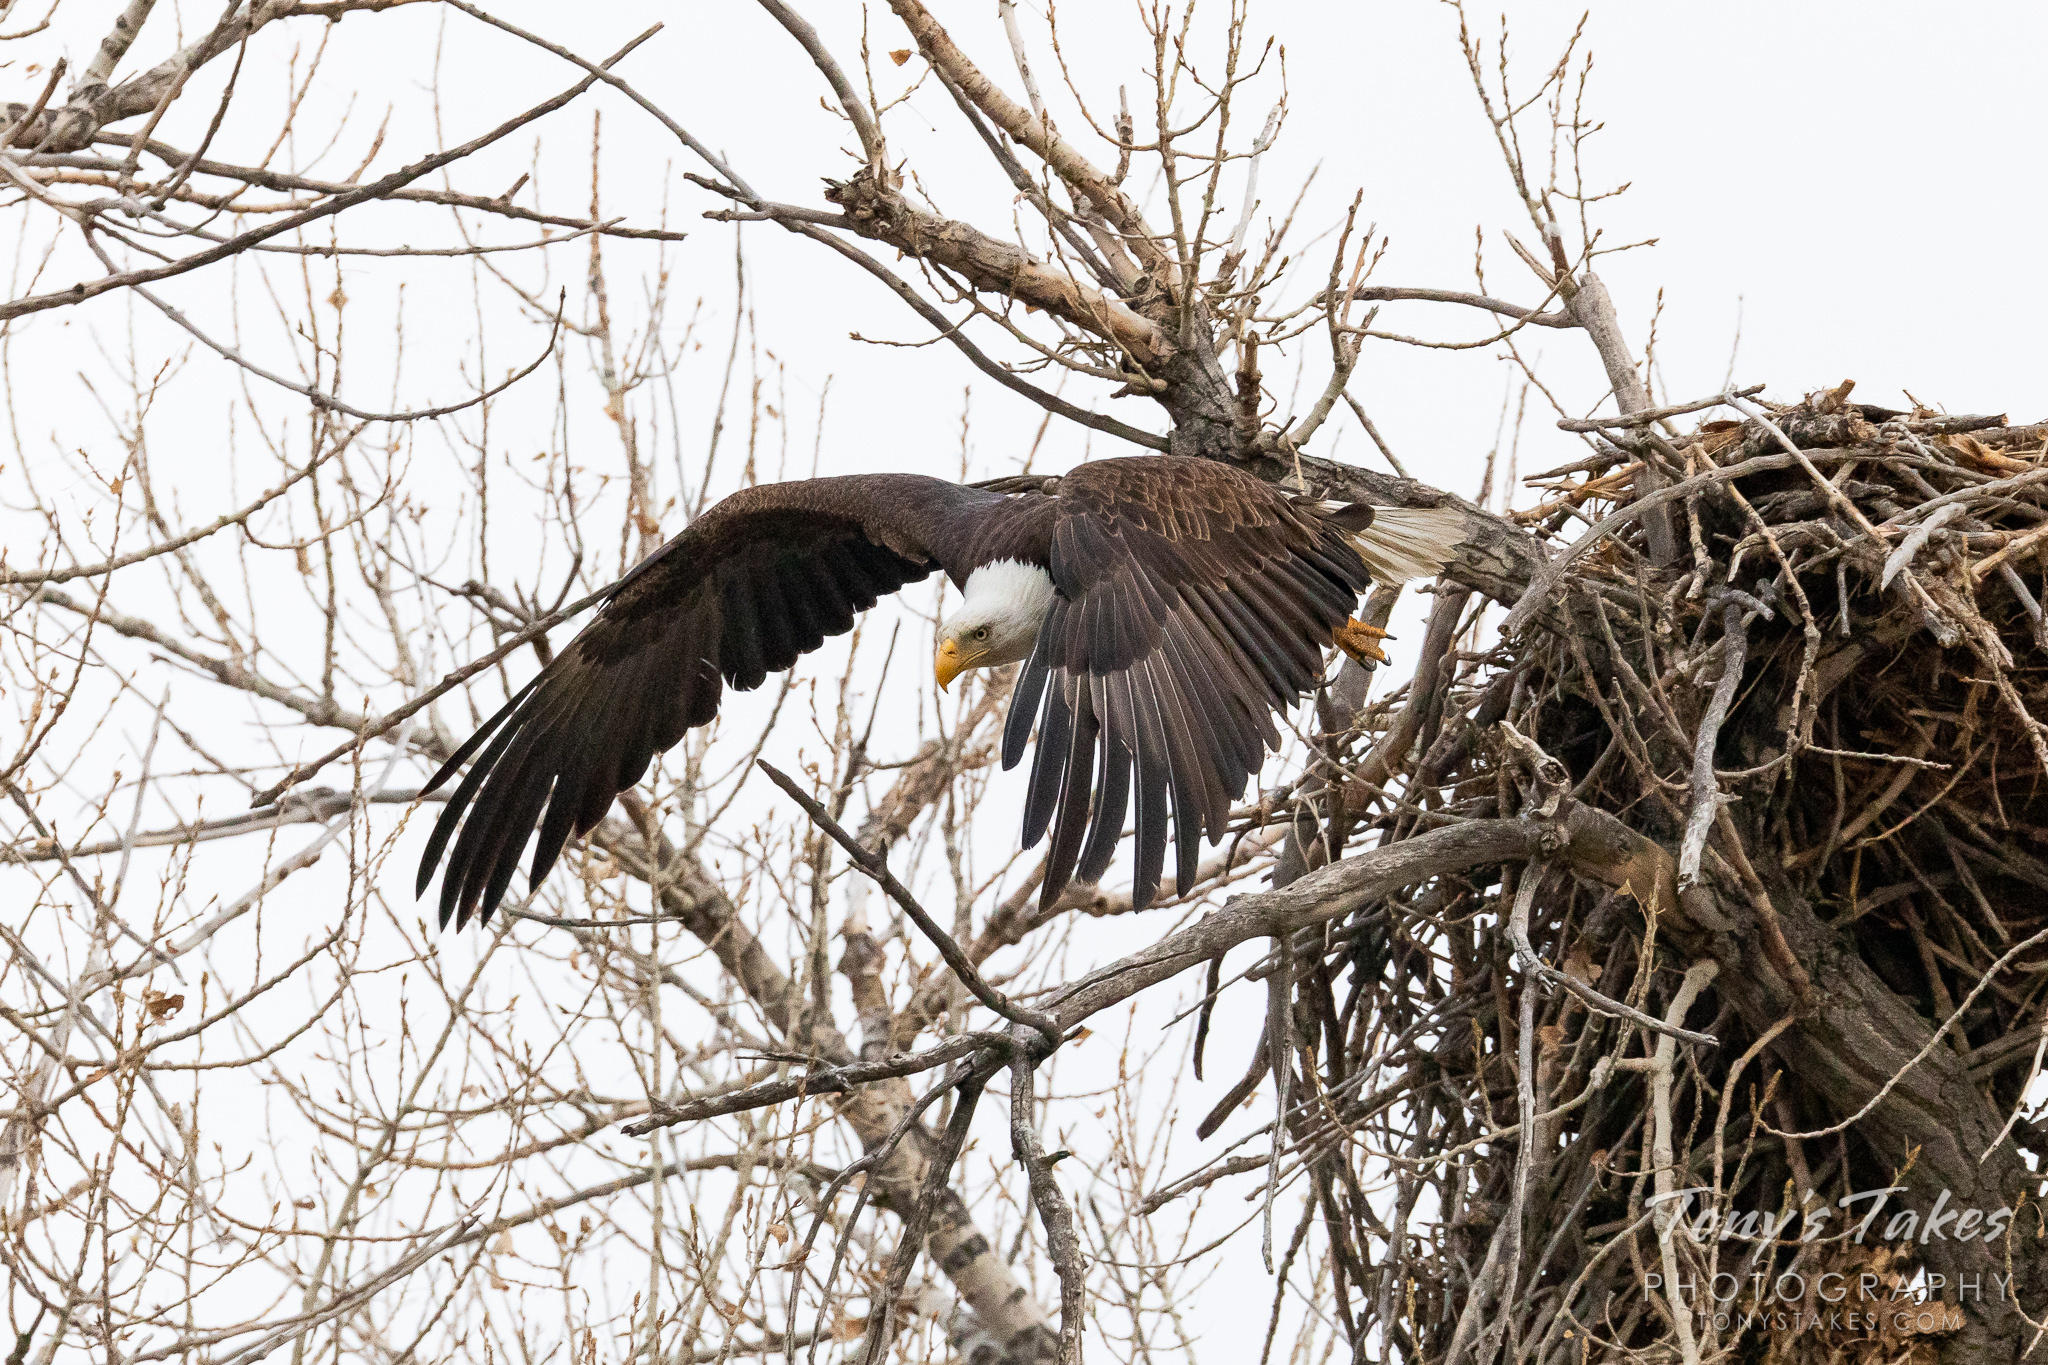 A bald eagle dives off its nest into the air along the South Platte River. (© Tony's Takes)